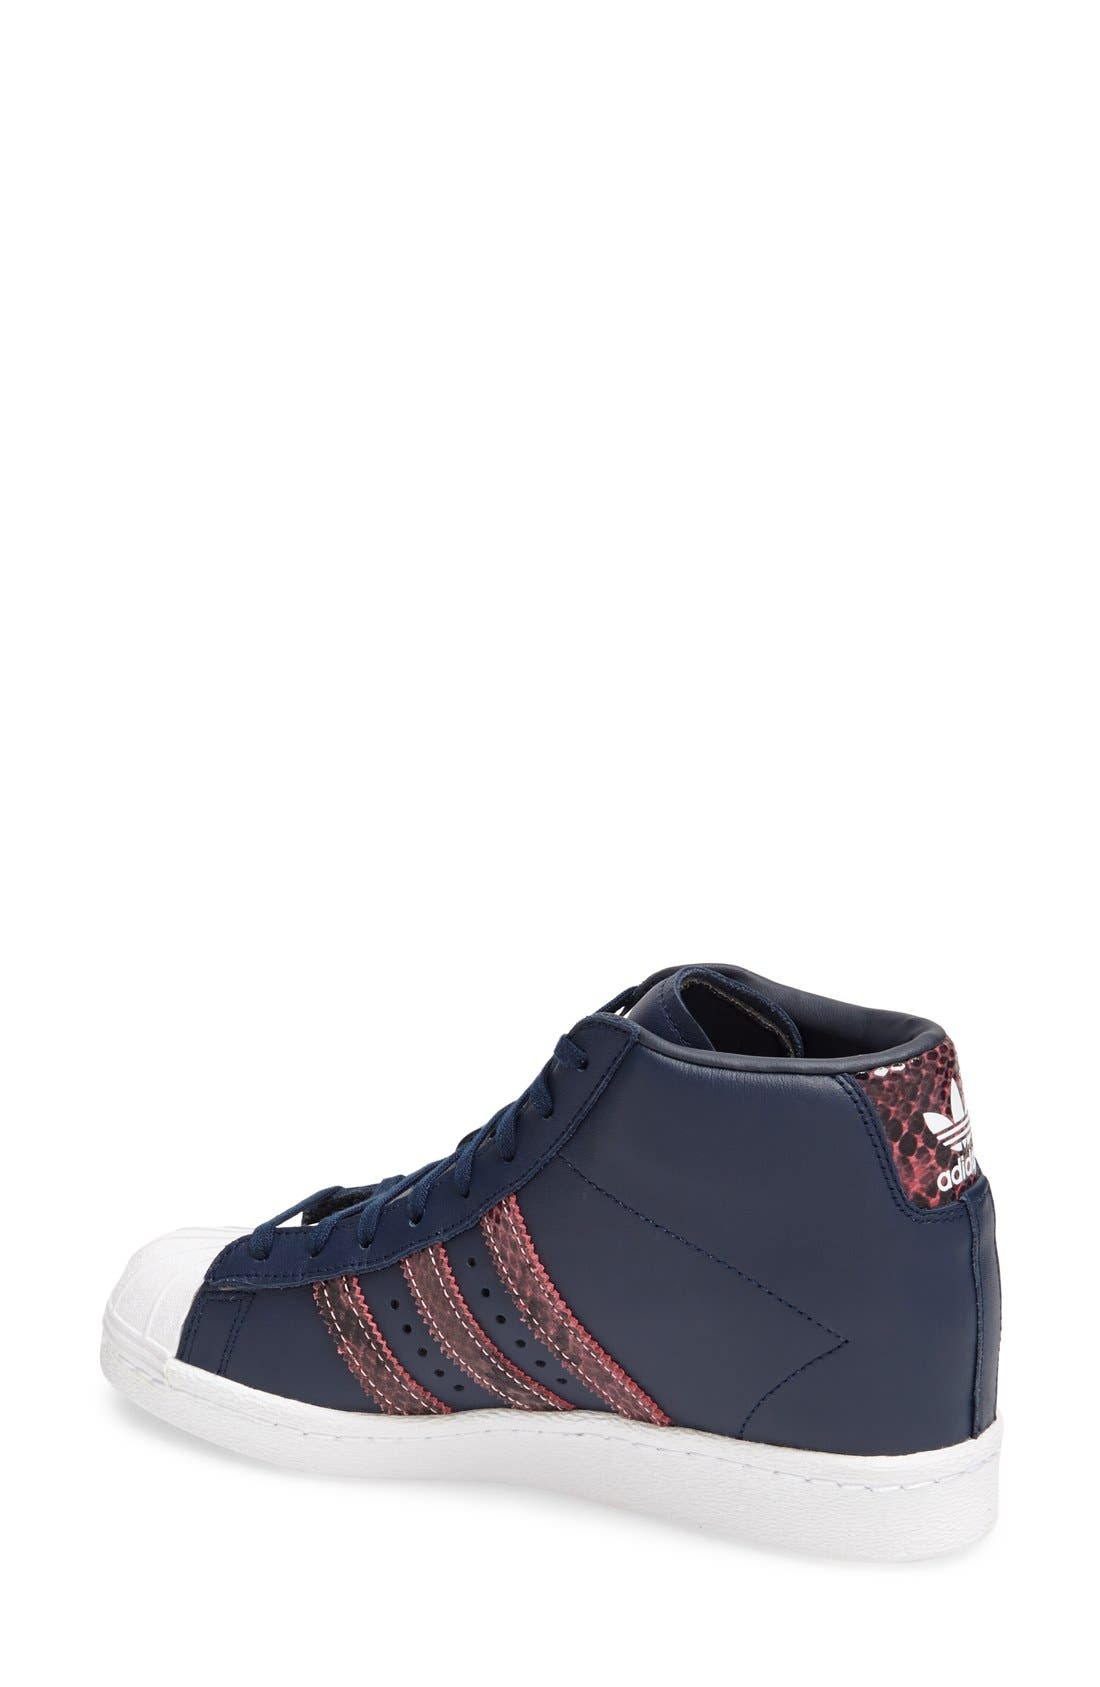 Alternate Image 2  - adidas 'Superstar Up' Hidden Wedge Leather Sneaker (Women)